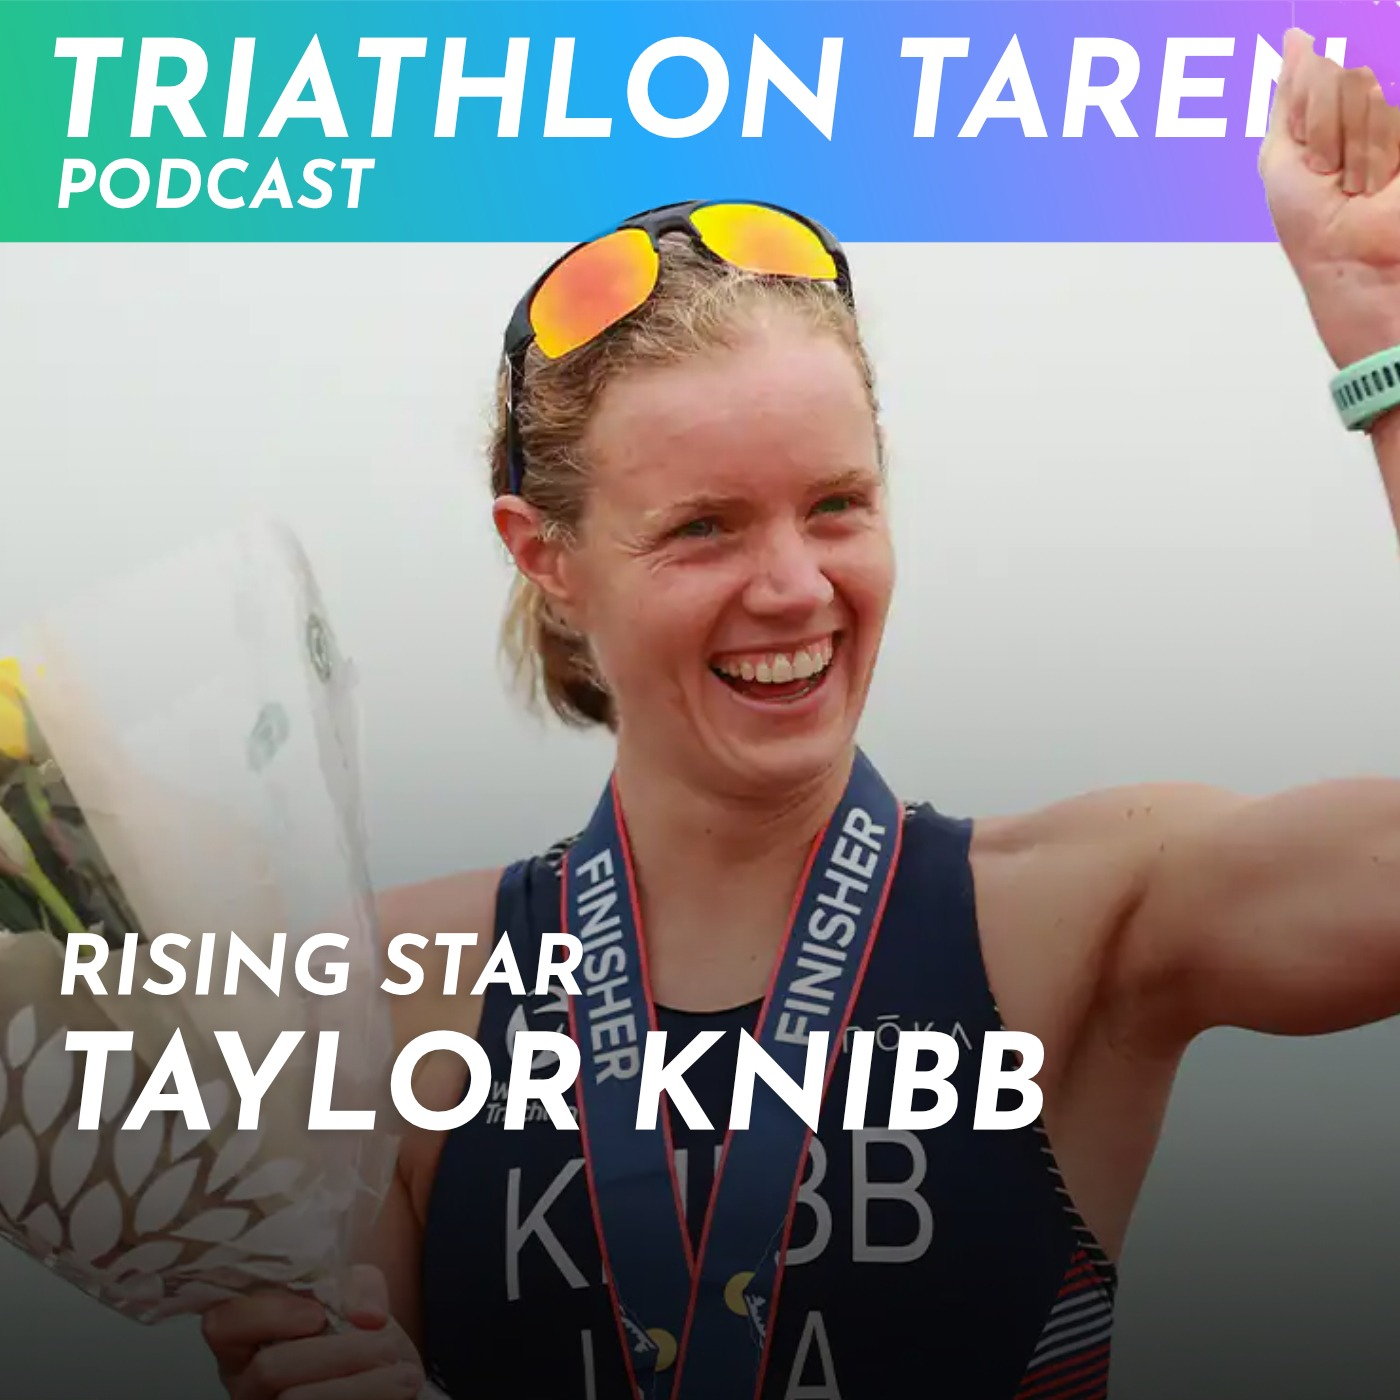 Everything You Wanted To Know About Taylor Knibb